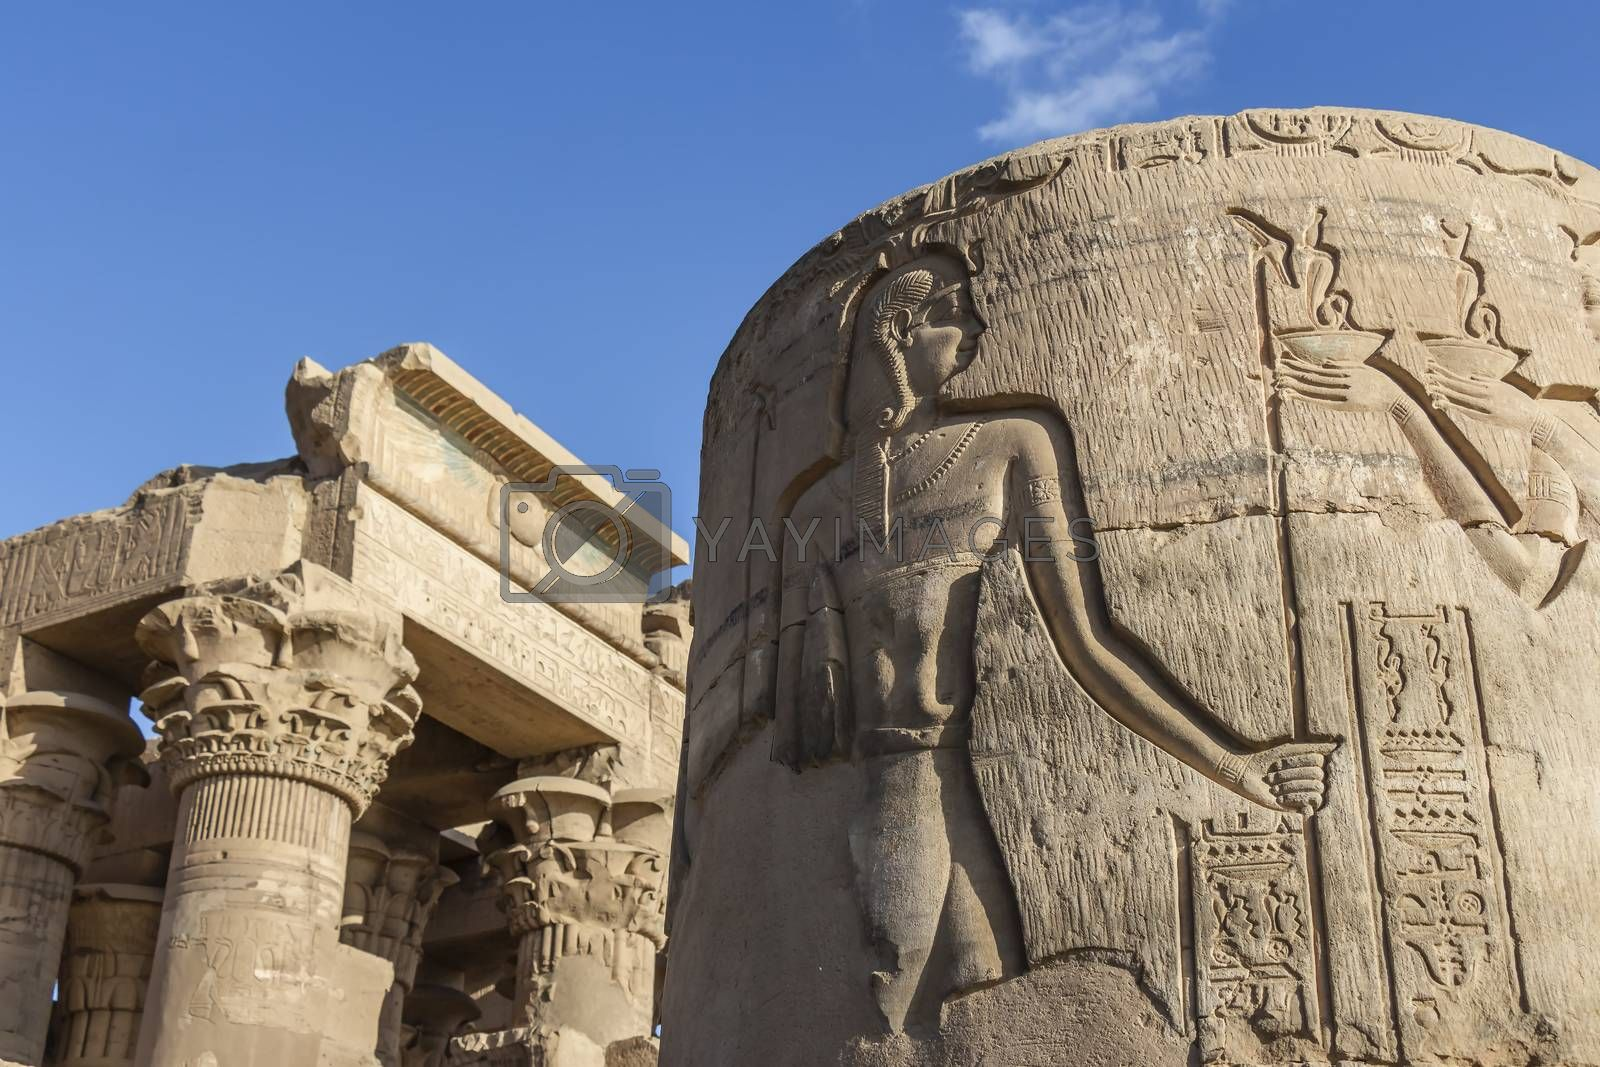 The relief carvings on a lower half column at the entrance of the Temple of Kom Ombo, Aswan